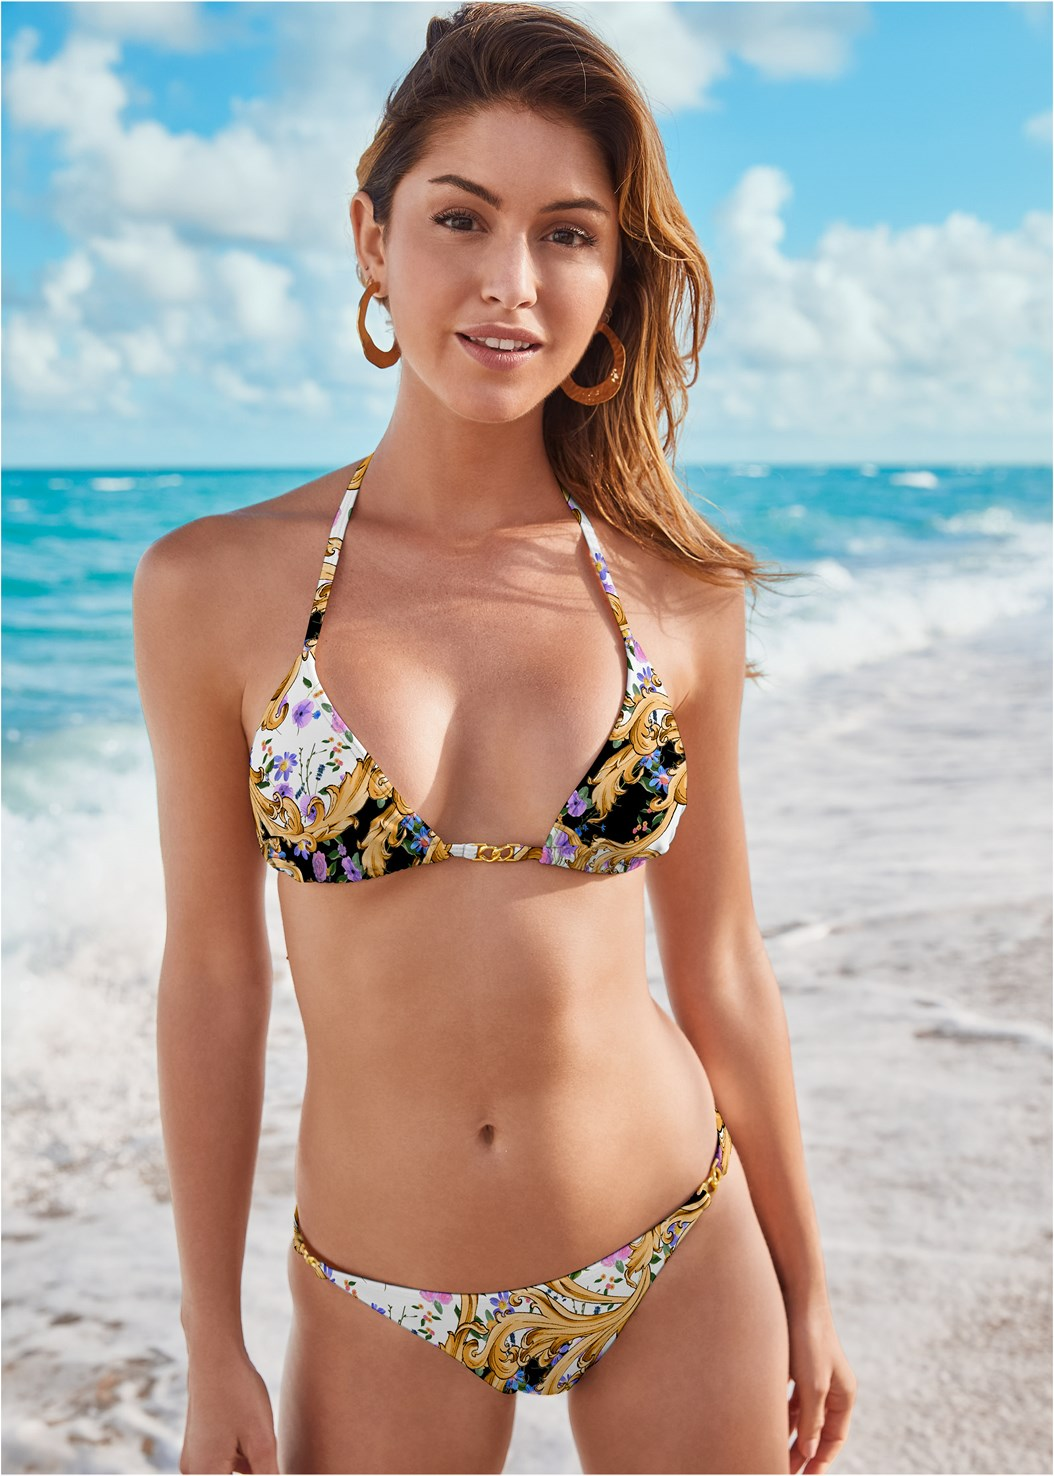 East Coast Bottom,Lagoon Push Up Top,Marilyn Underwire Push Up Halter Top,Circular Straw Bag